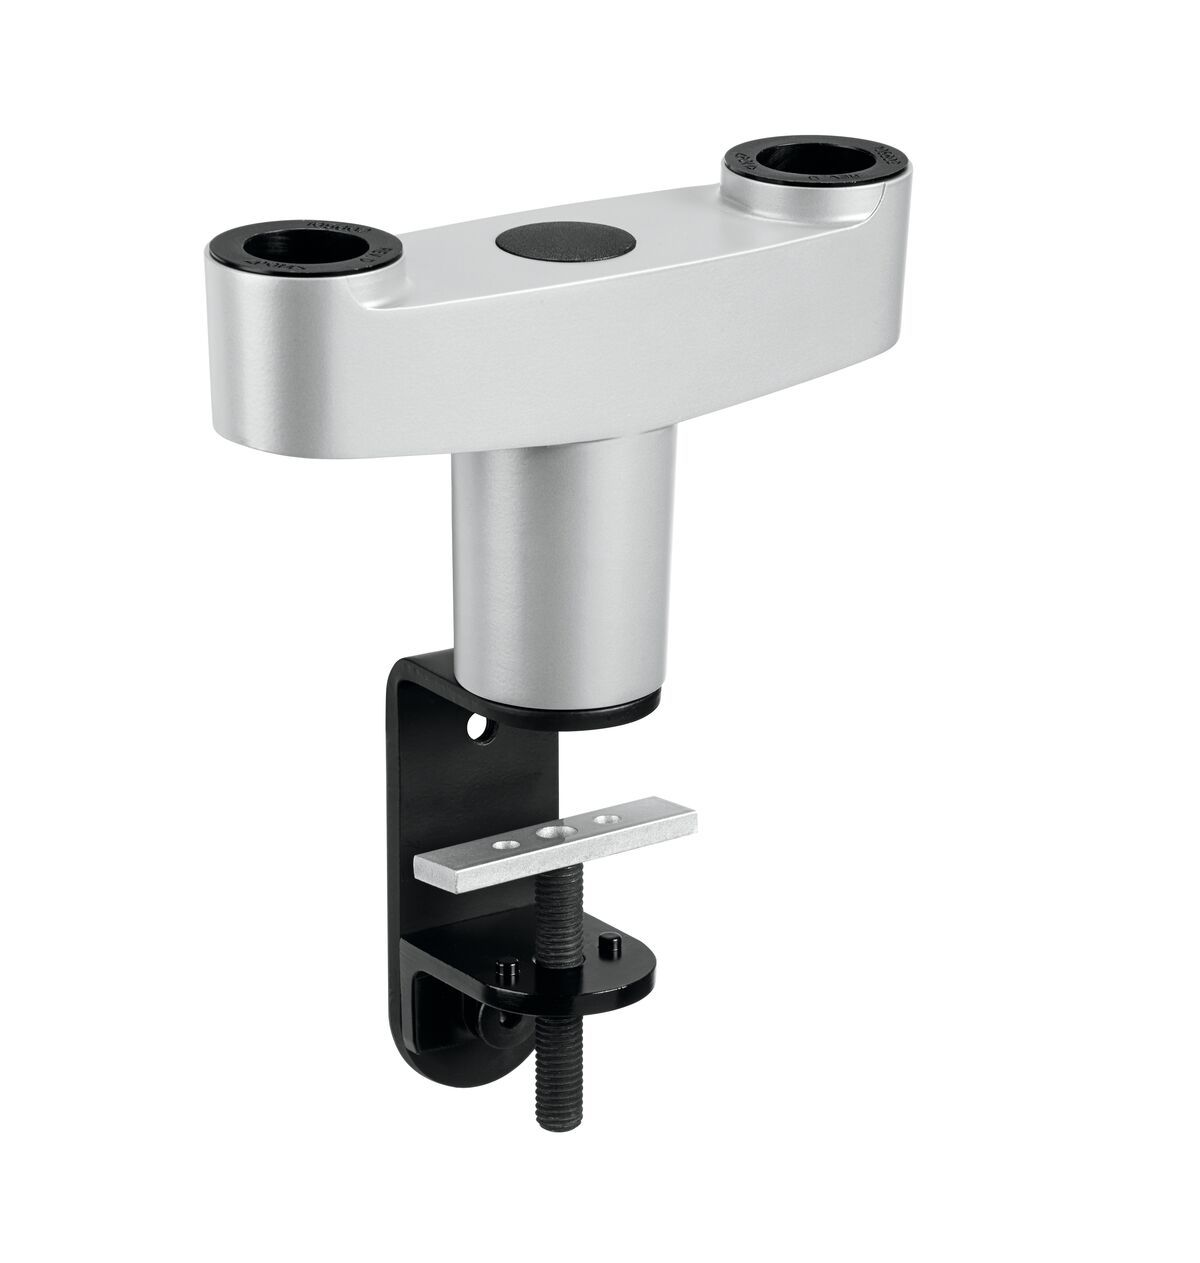 Vogel's PFA 9125 Dual monitor mount adapter silver - Product